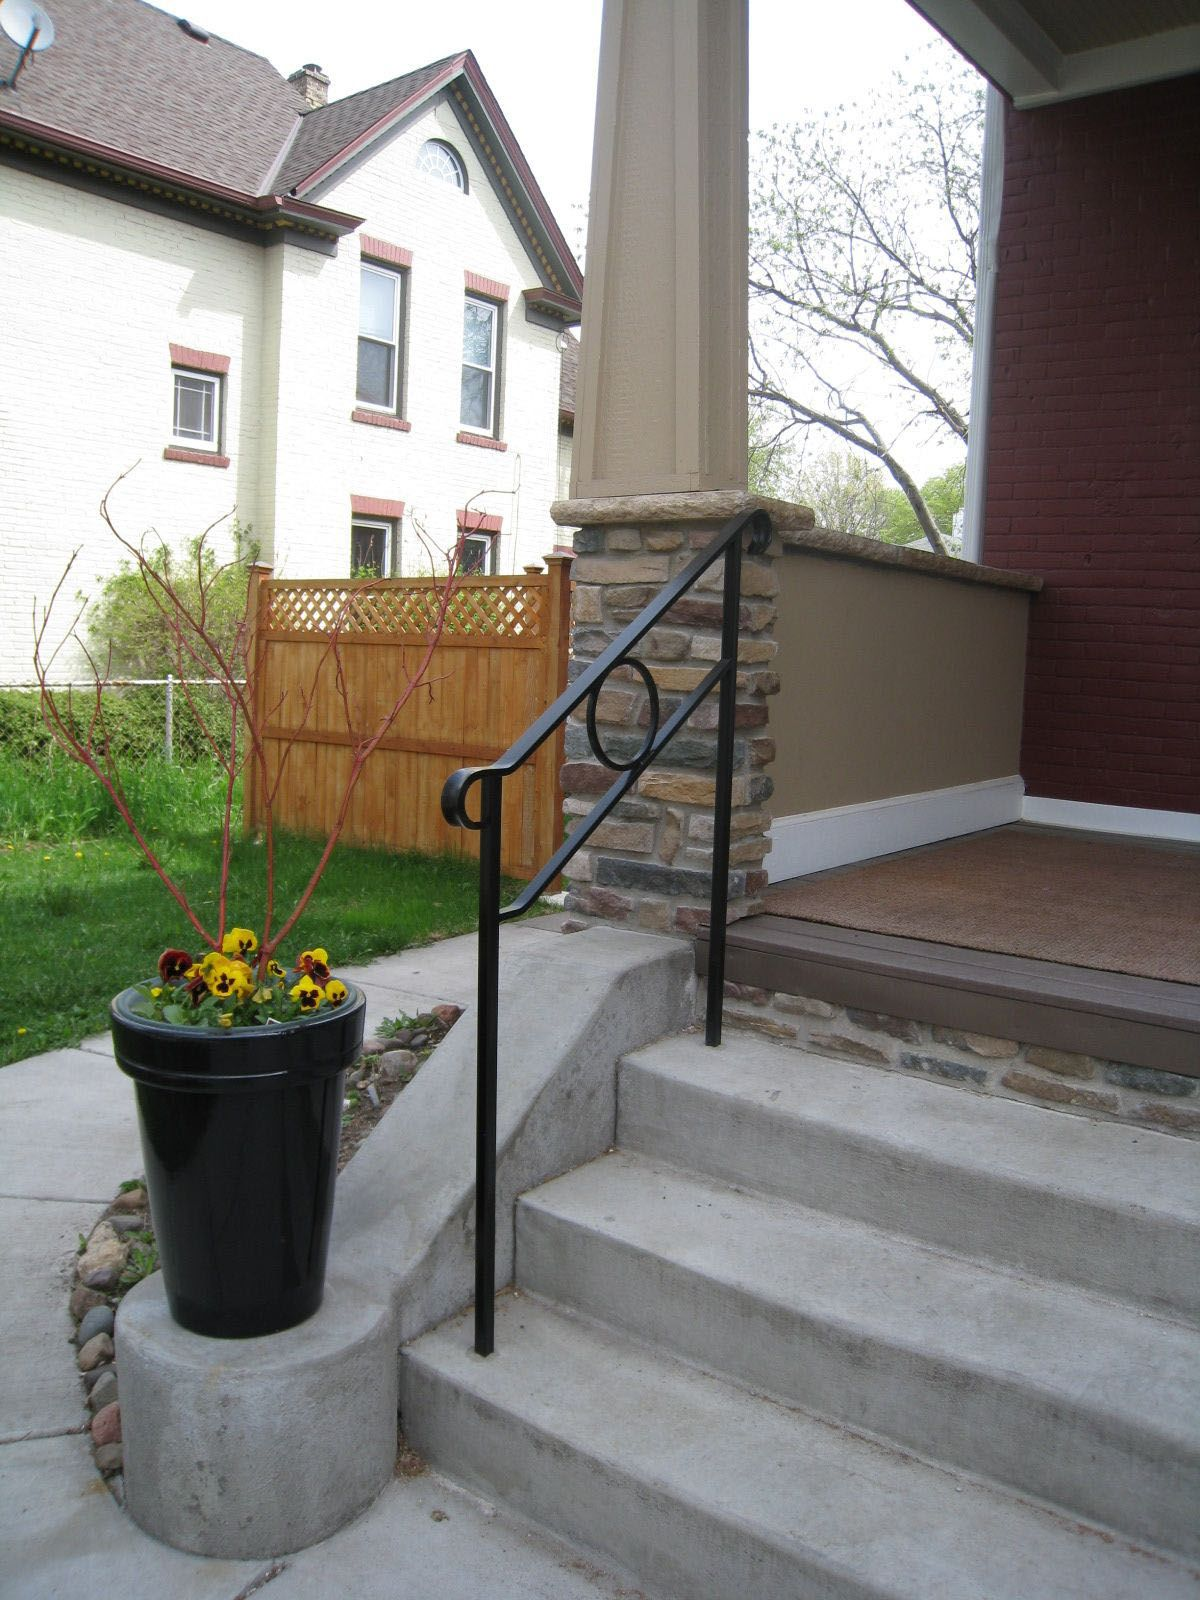 Outdoor Stair Railing Ideas Outdoor Stair Railing Railings Outdoor Iron Railings Outdoor